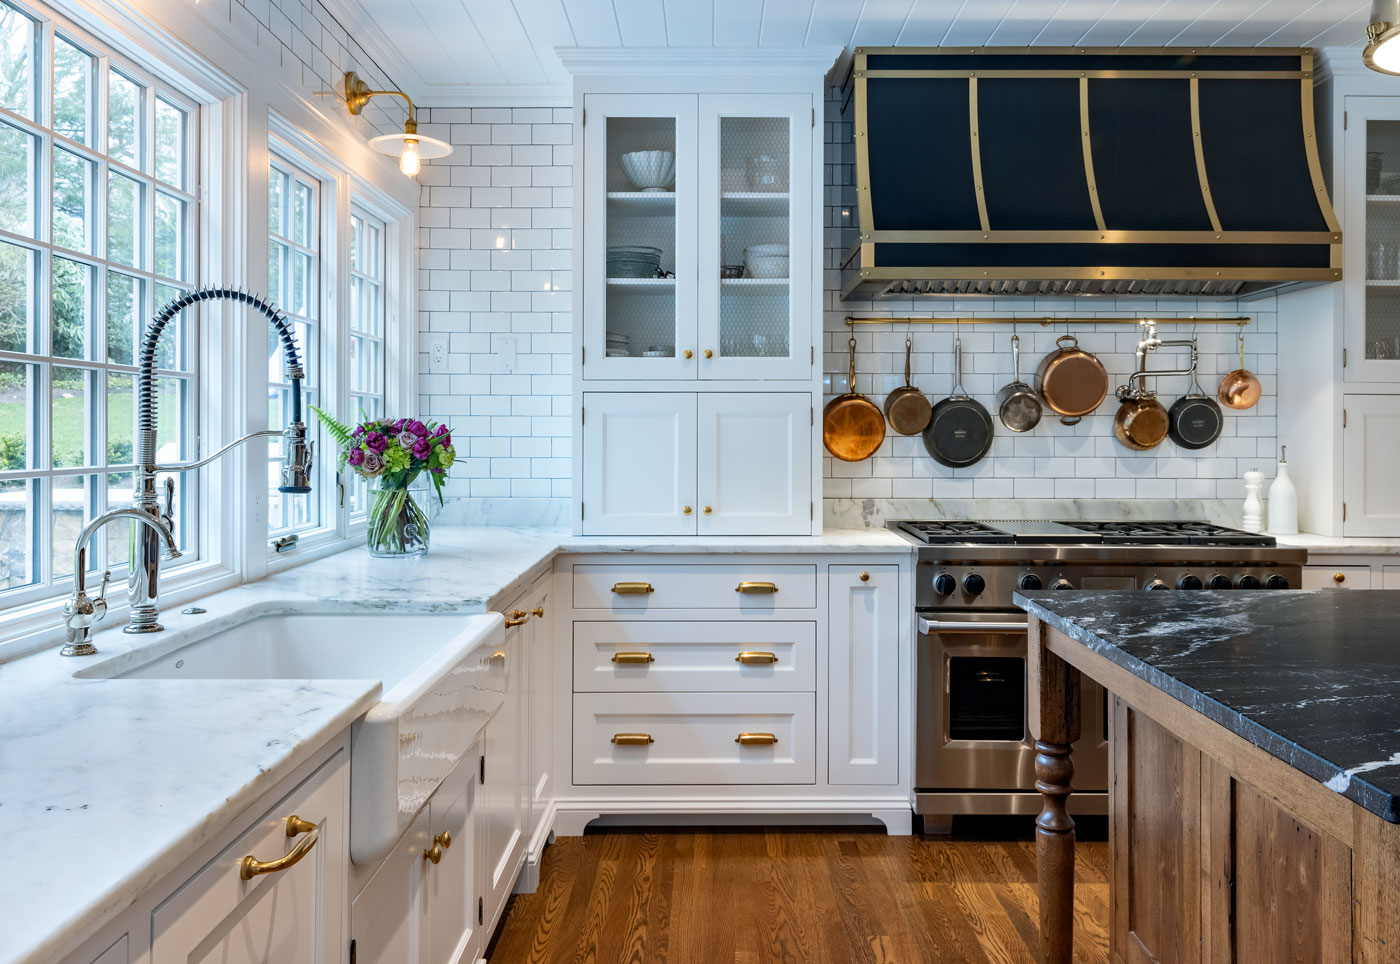 white kitchen with white tiles on the wall and countertops